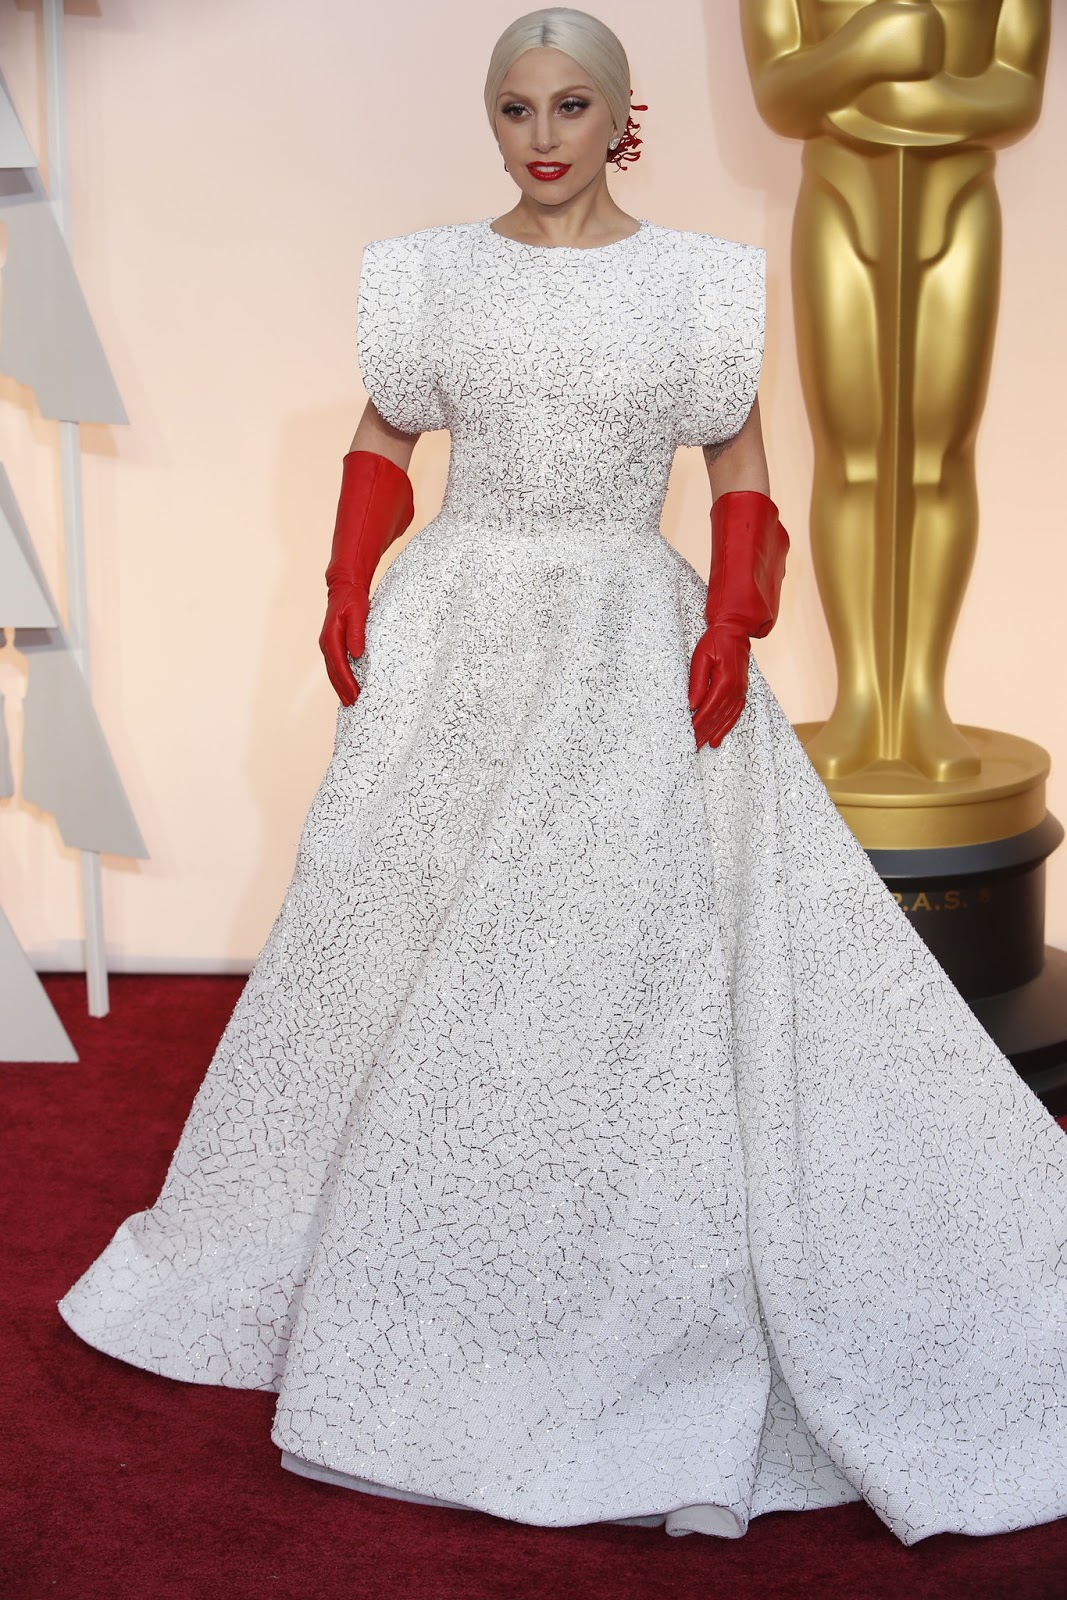 Lady Gaga in Alaïa‎ at the Oscars 2015